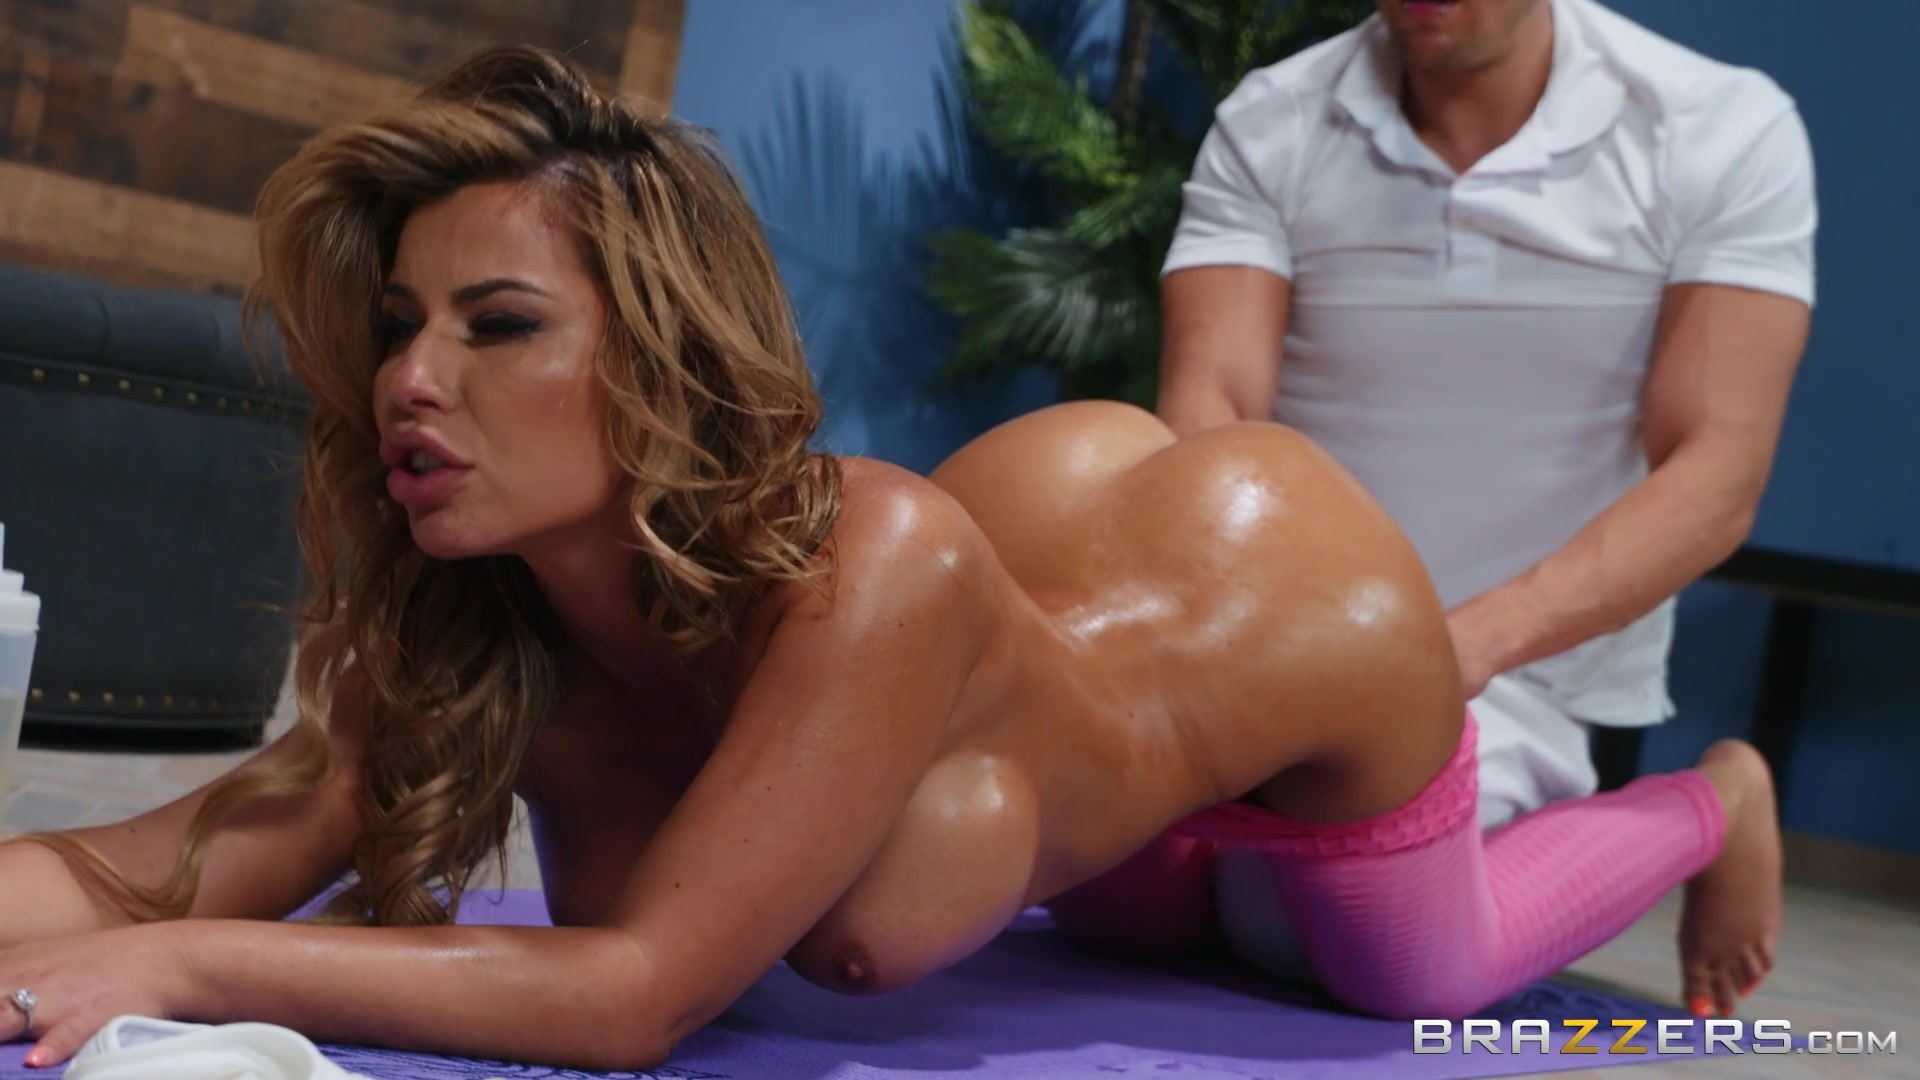 OiledNina Milano spreads her legs for a penis on the massage table